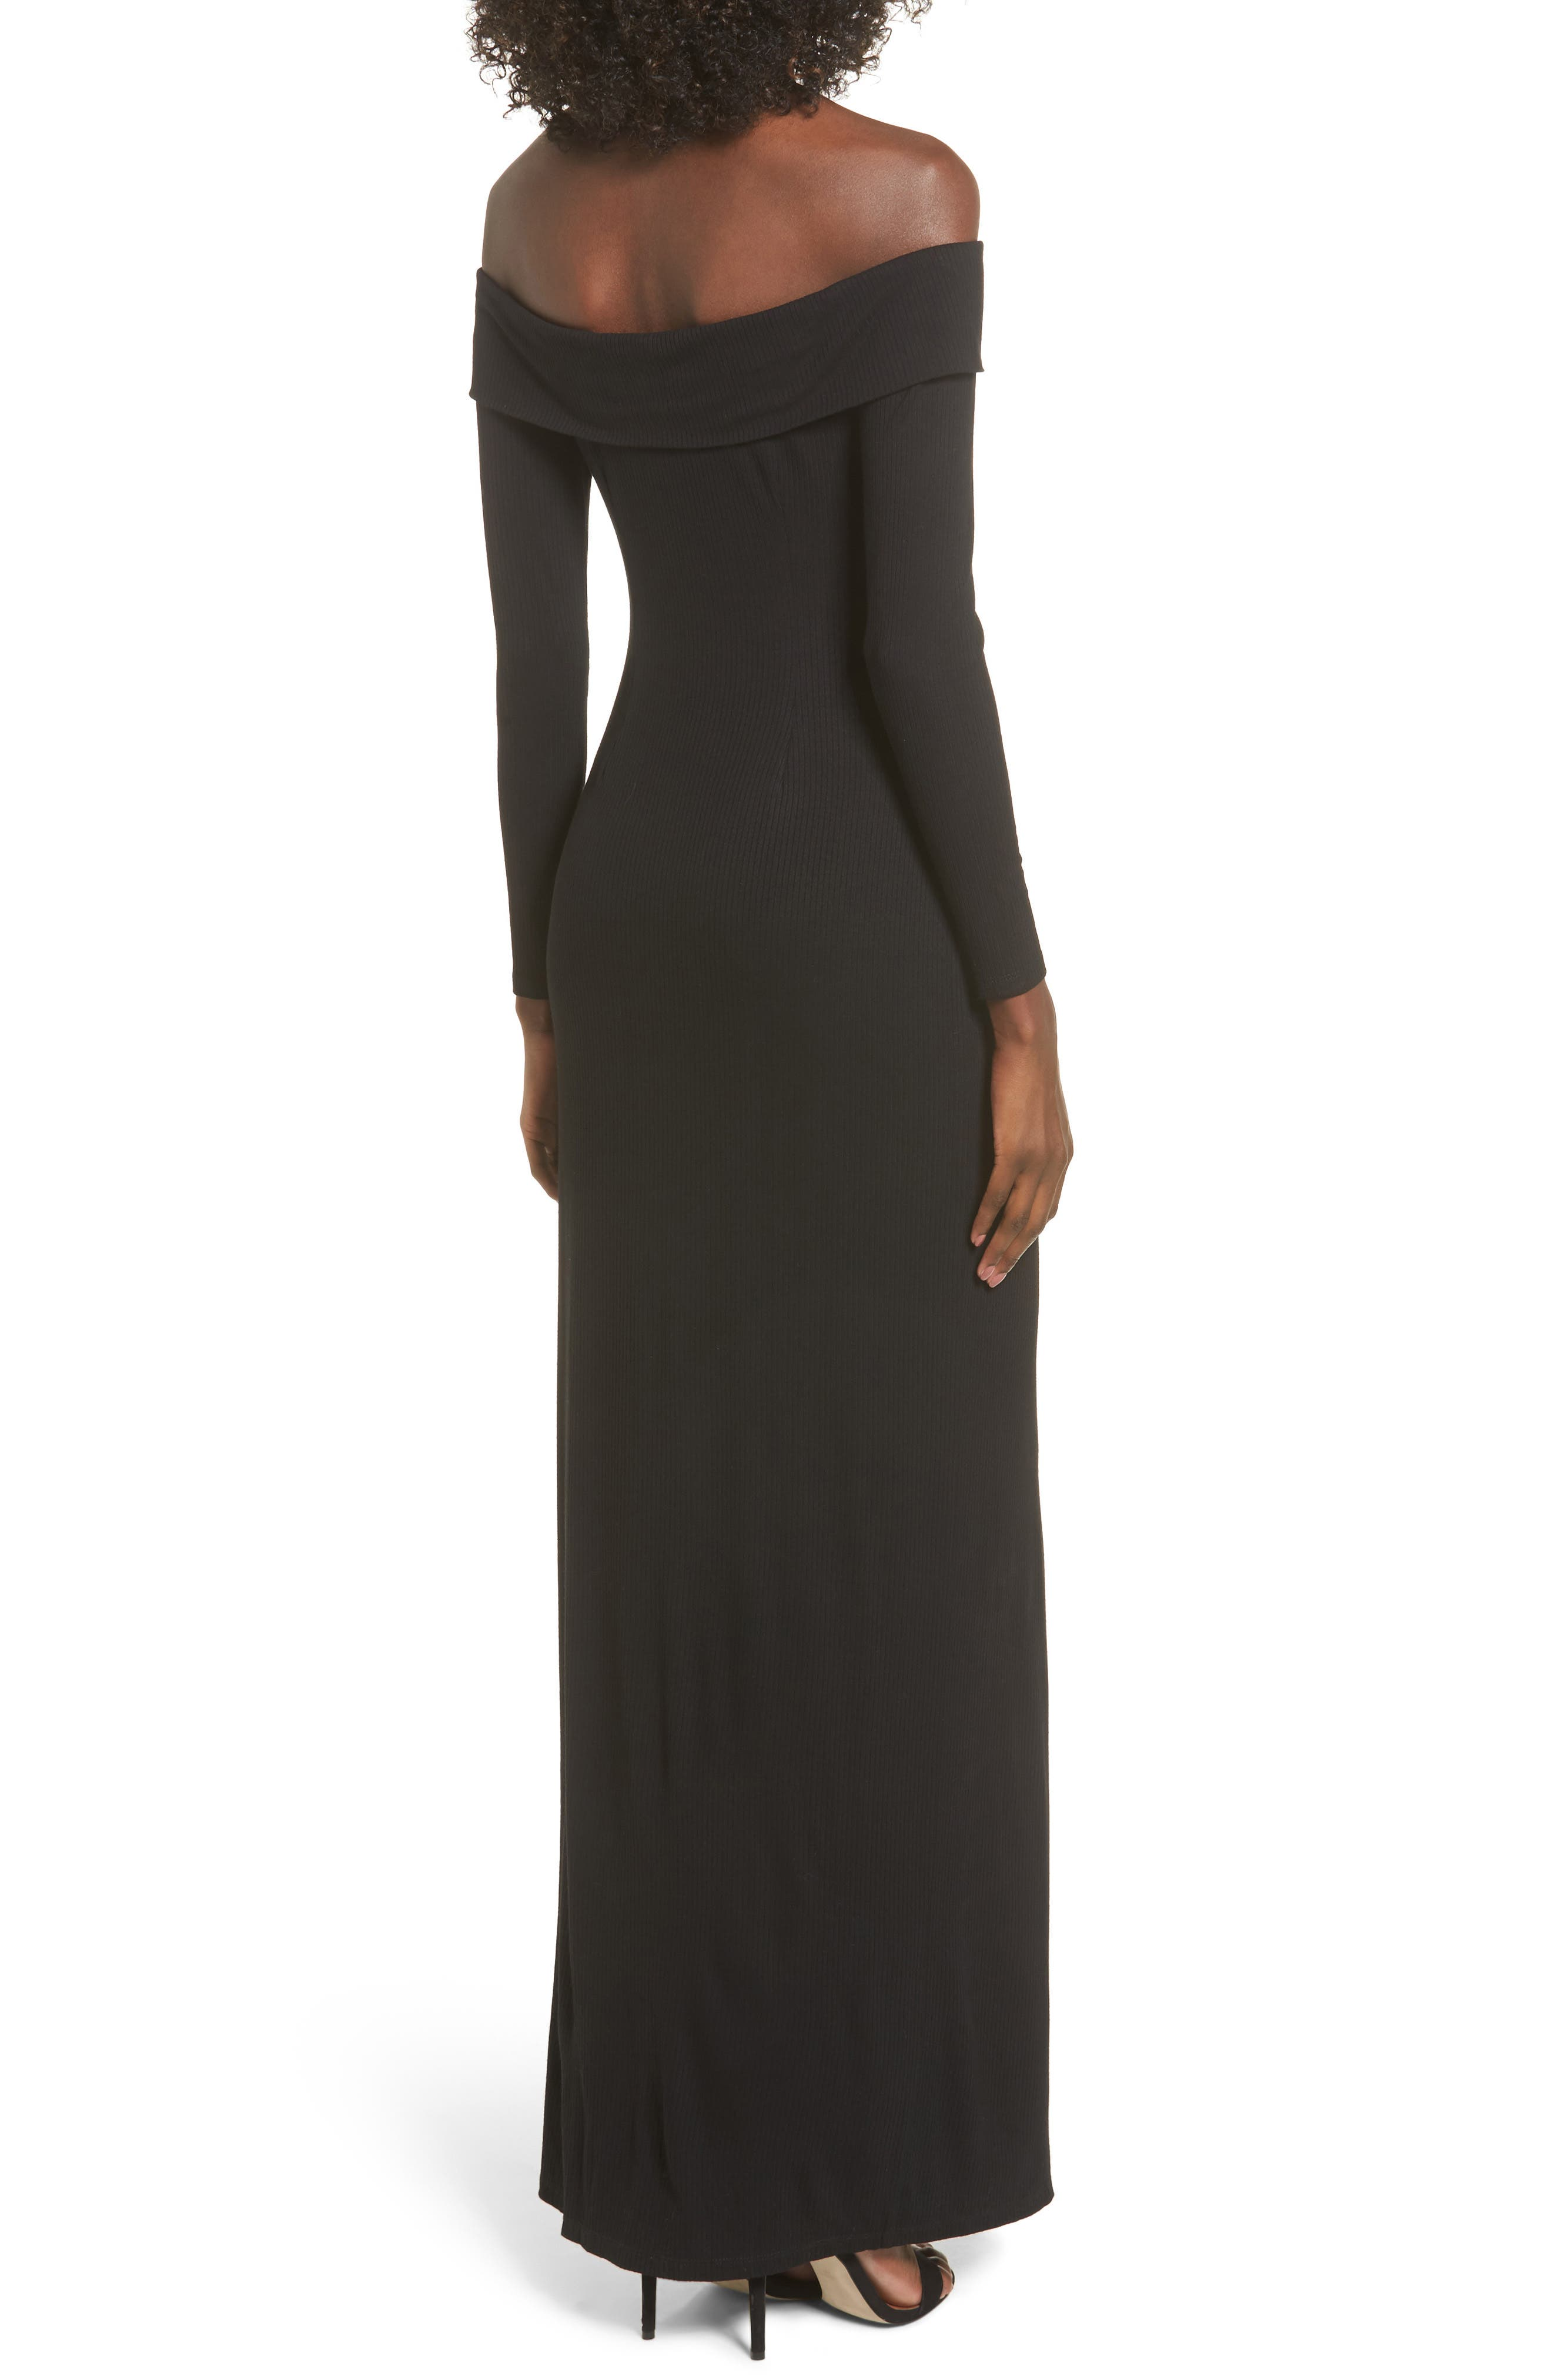 Royale Off the Shoulder Maxi Dress,                             Alternate thumbnail 2, color,                             Black